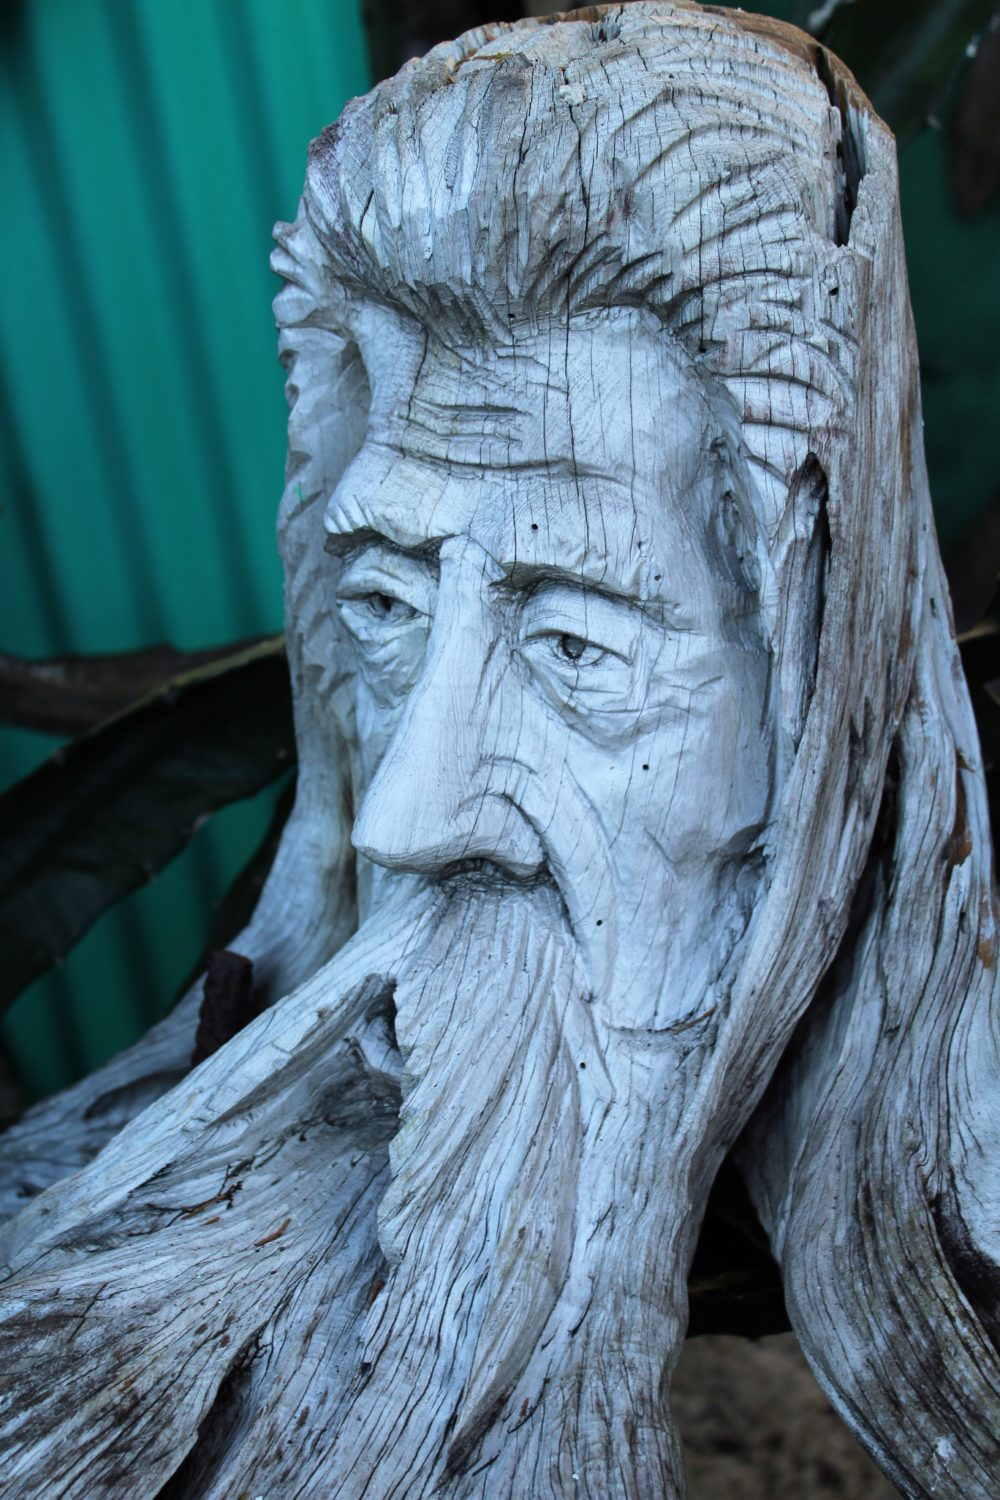 Peter also carves amazing wizards and curious creatures, working with the shape of the driftwood.